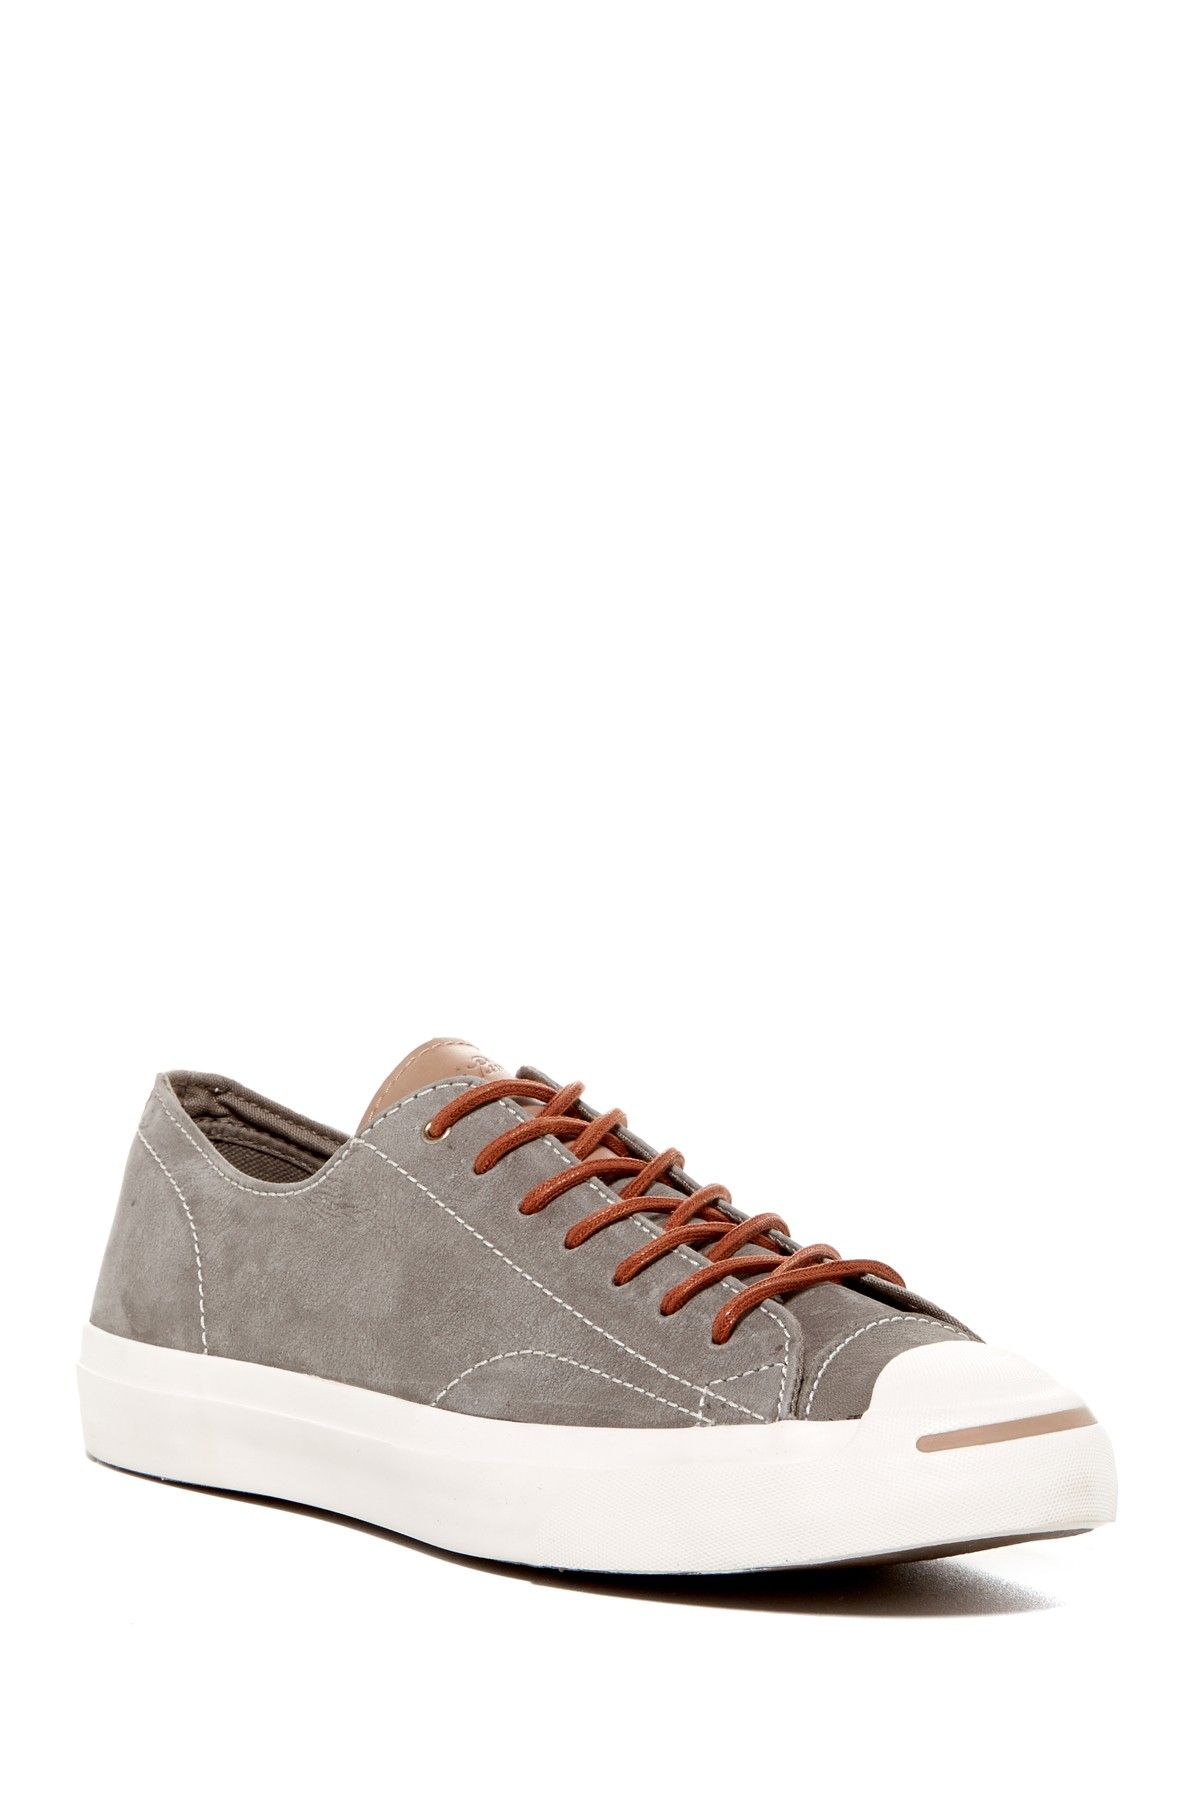 39891849d41b Converse Jack Purcell Oxford Sneakers for Him